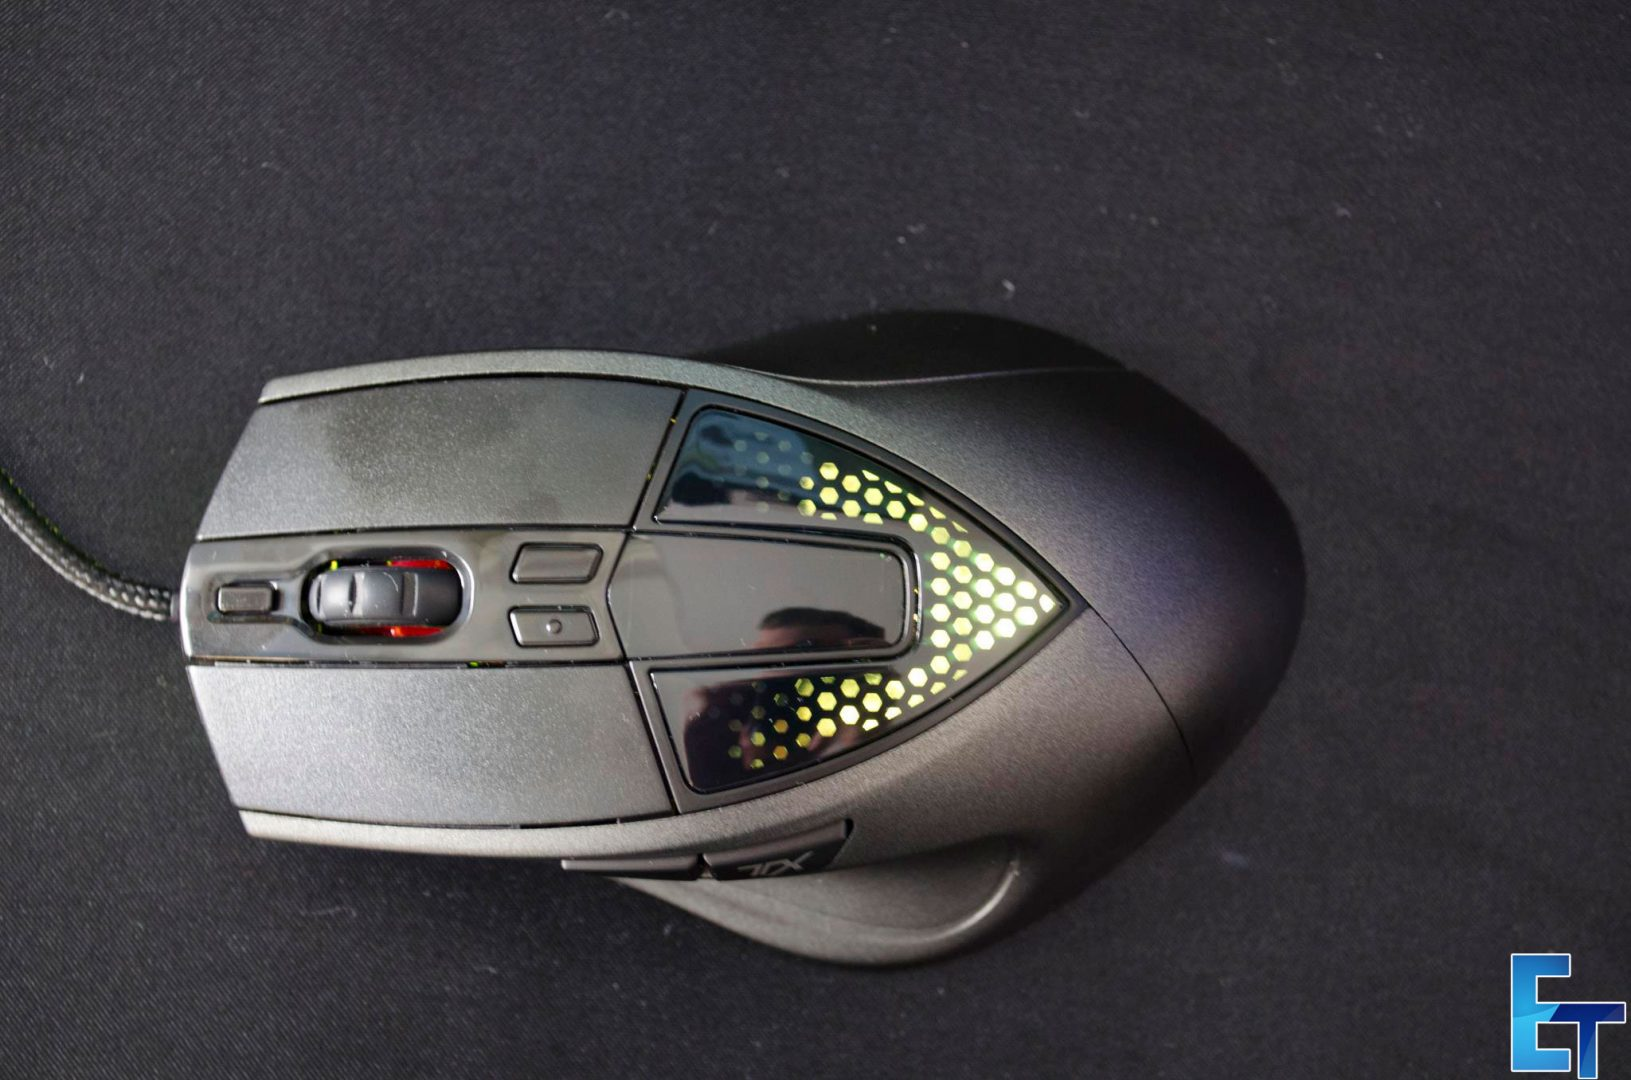 Cooler-Master-Sentinel-III-Ergonomic-Gaming-Mouse-Review